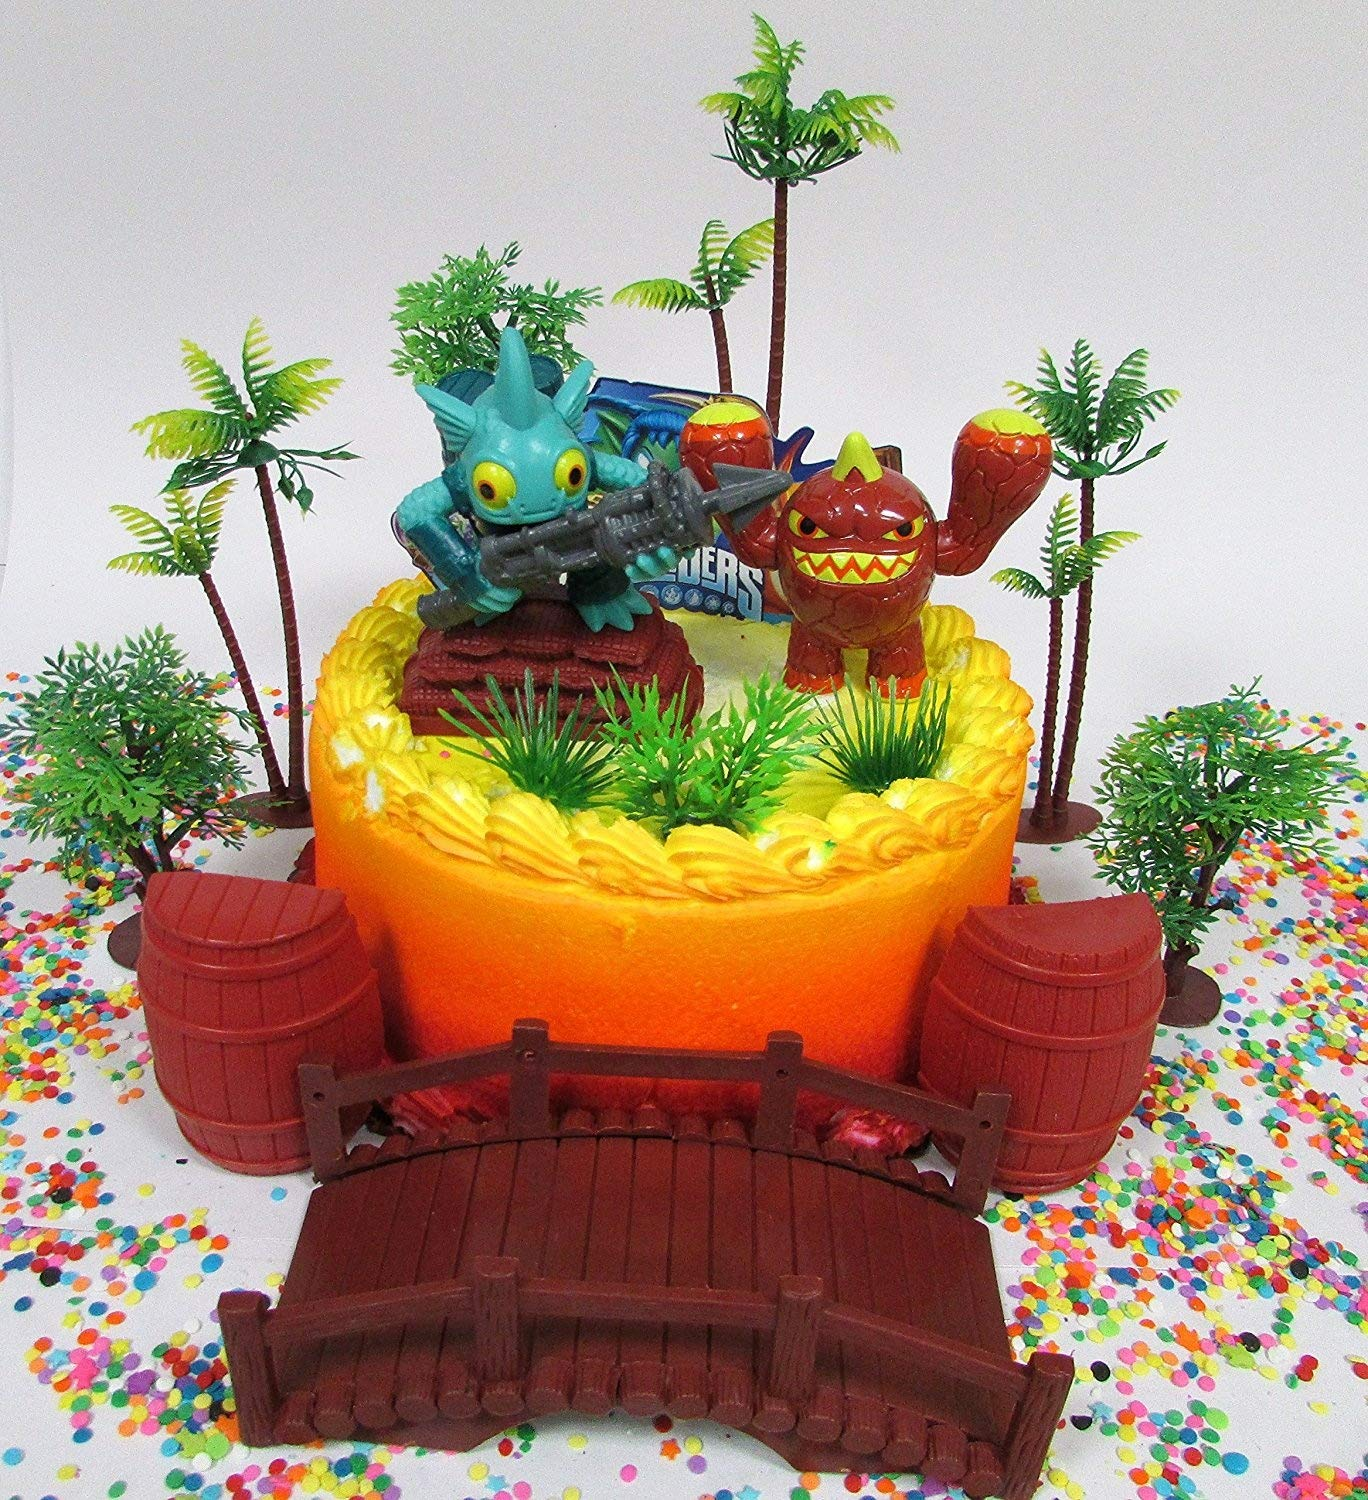 Amazon SKYLANDERS Themed Birthday Cake Topper Set Featuring Skylander Figures And Decorative Accessories Toys Games